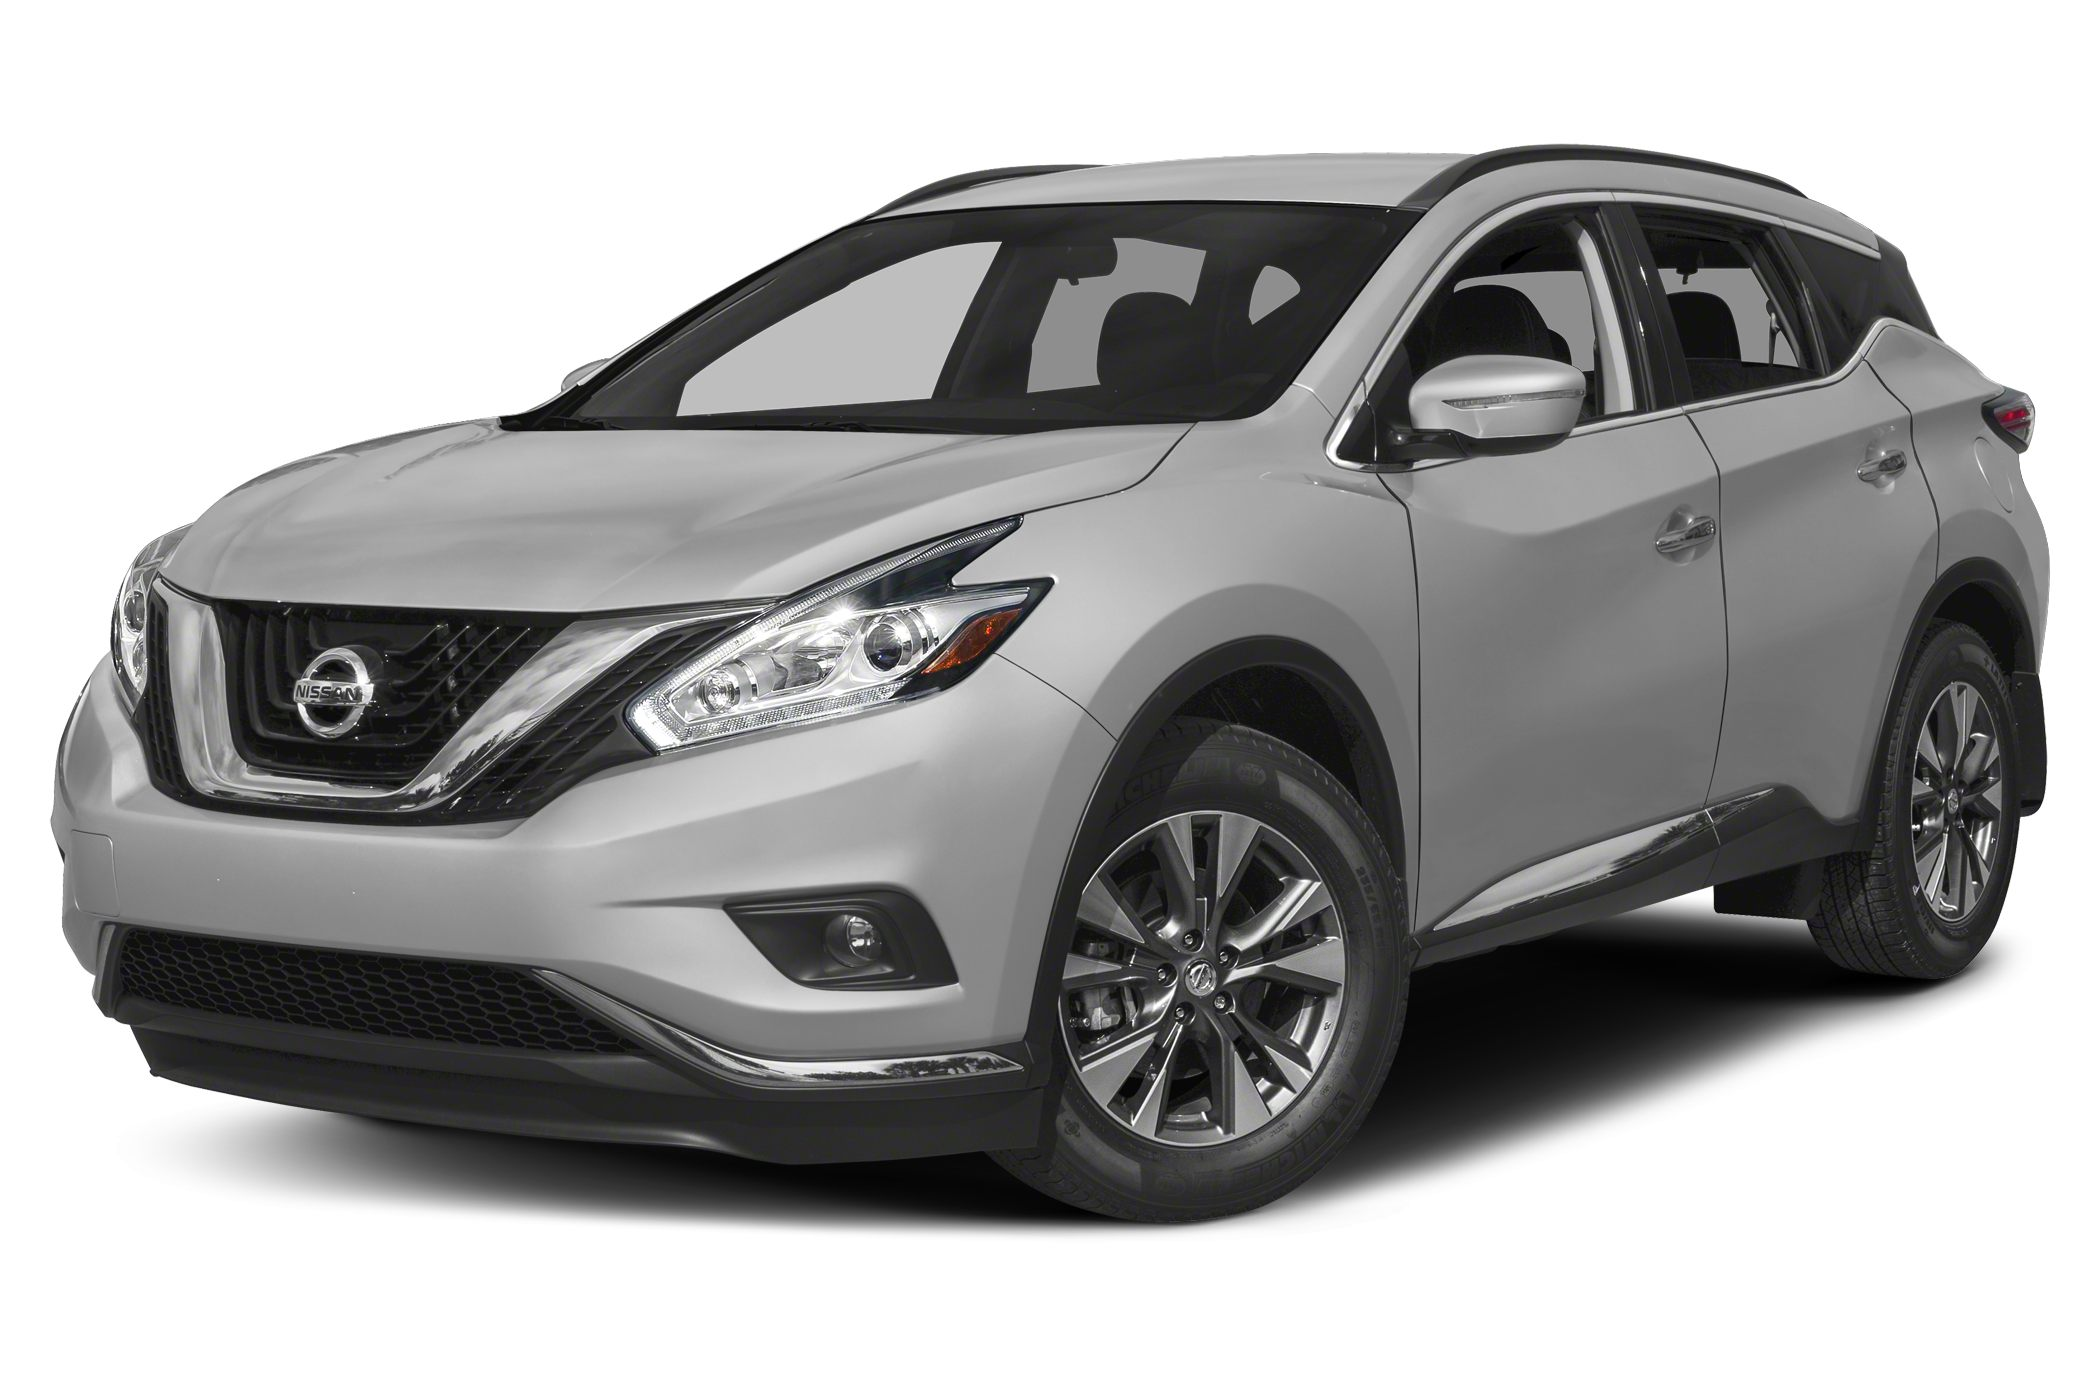 2016 Nissan Murano Pricing And Specs